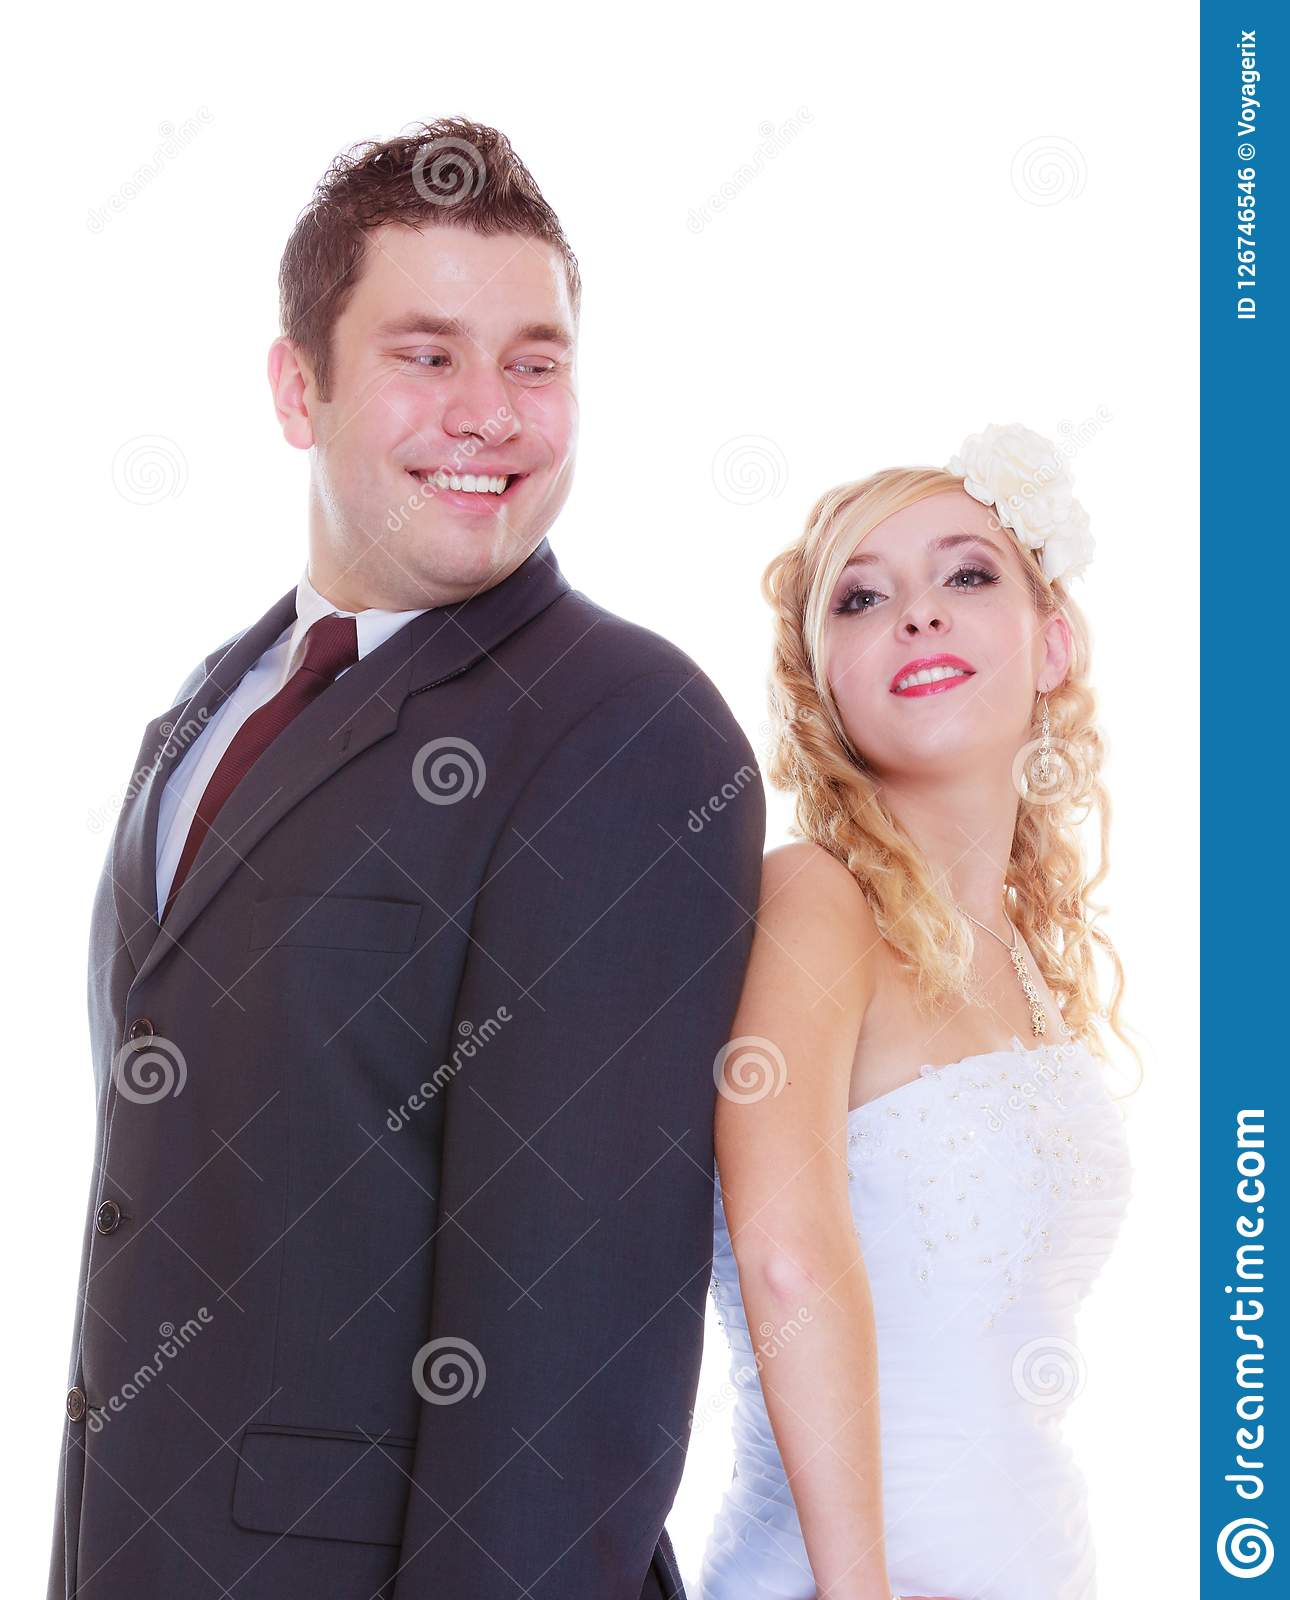 Happy groom and bride posing for marriage photo